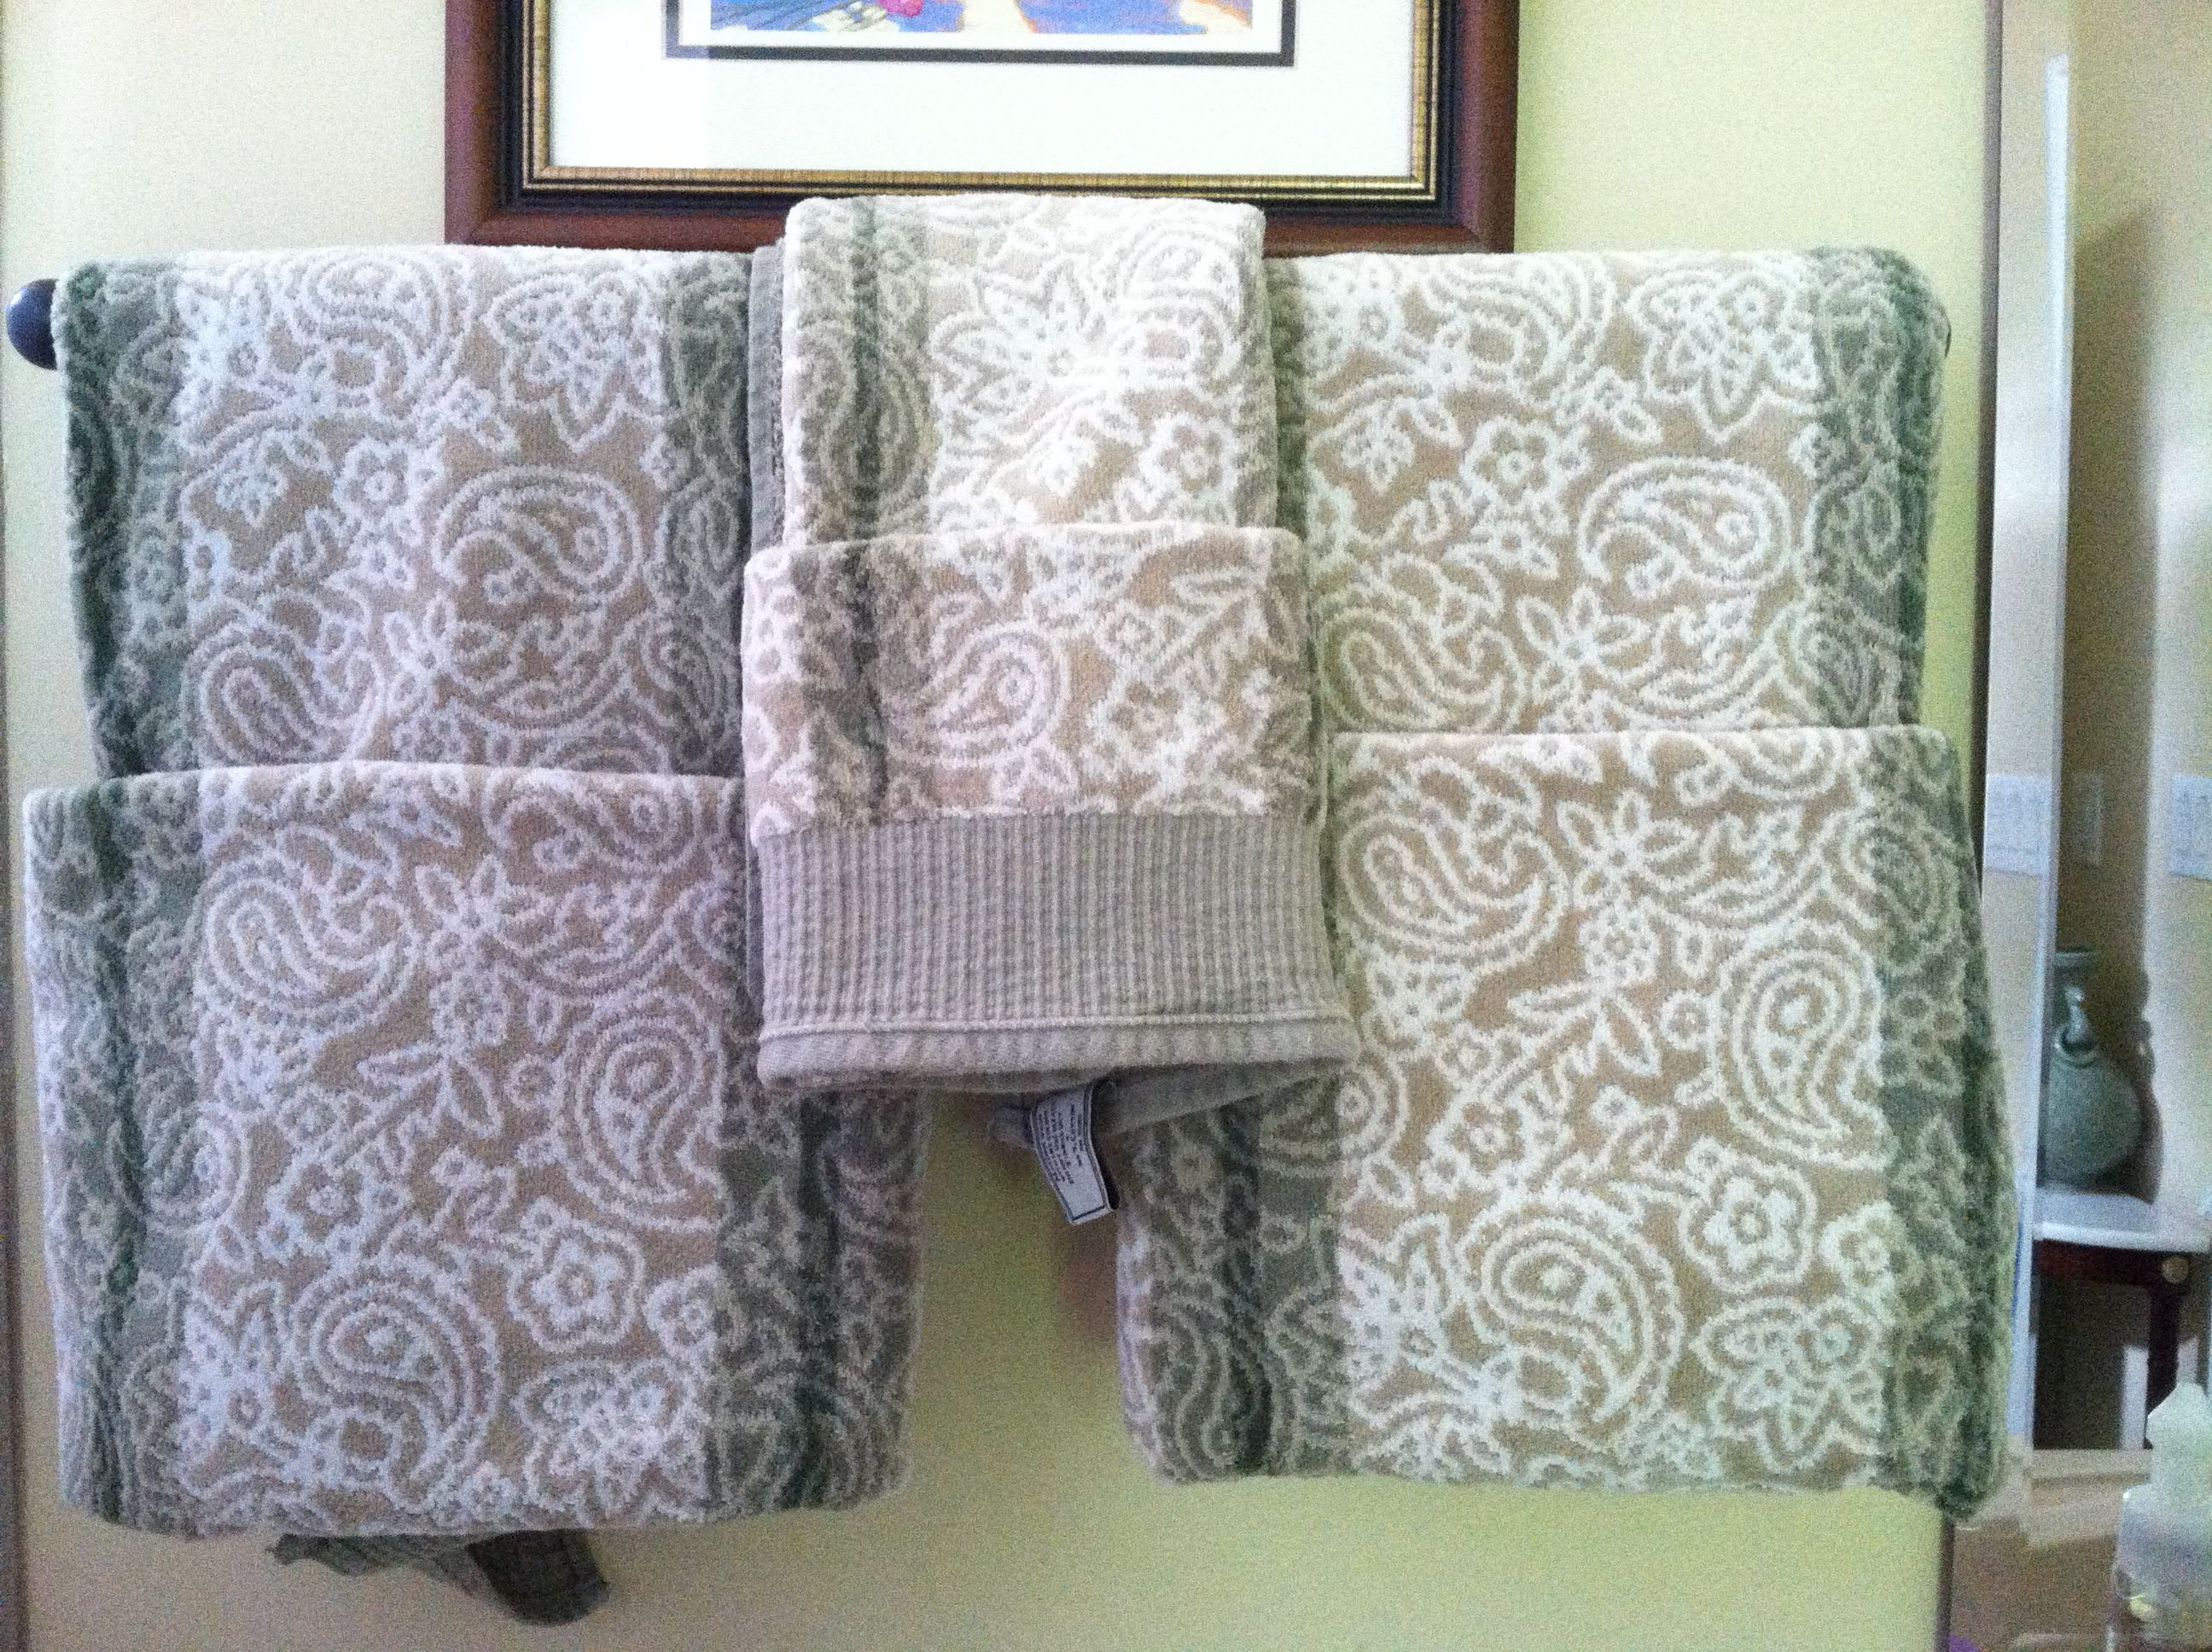 Fold Towels In Guest Bathroom Or Any Bathroom In General